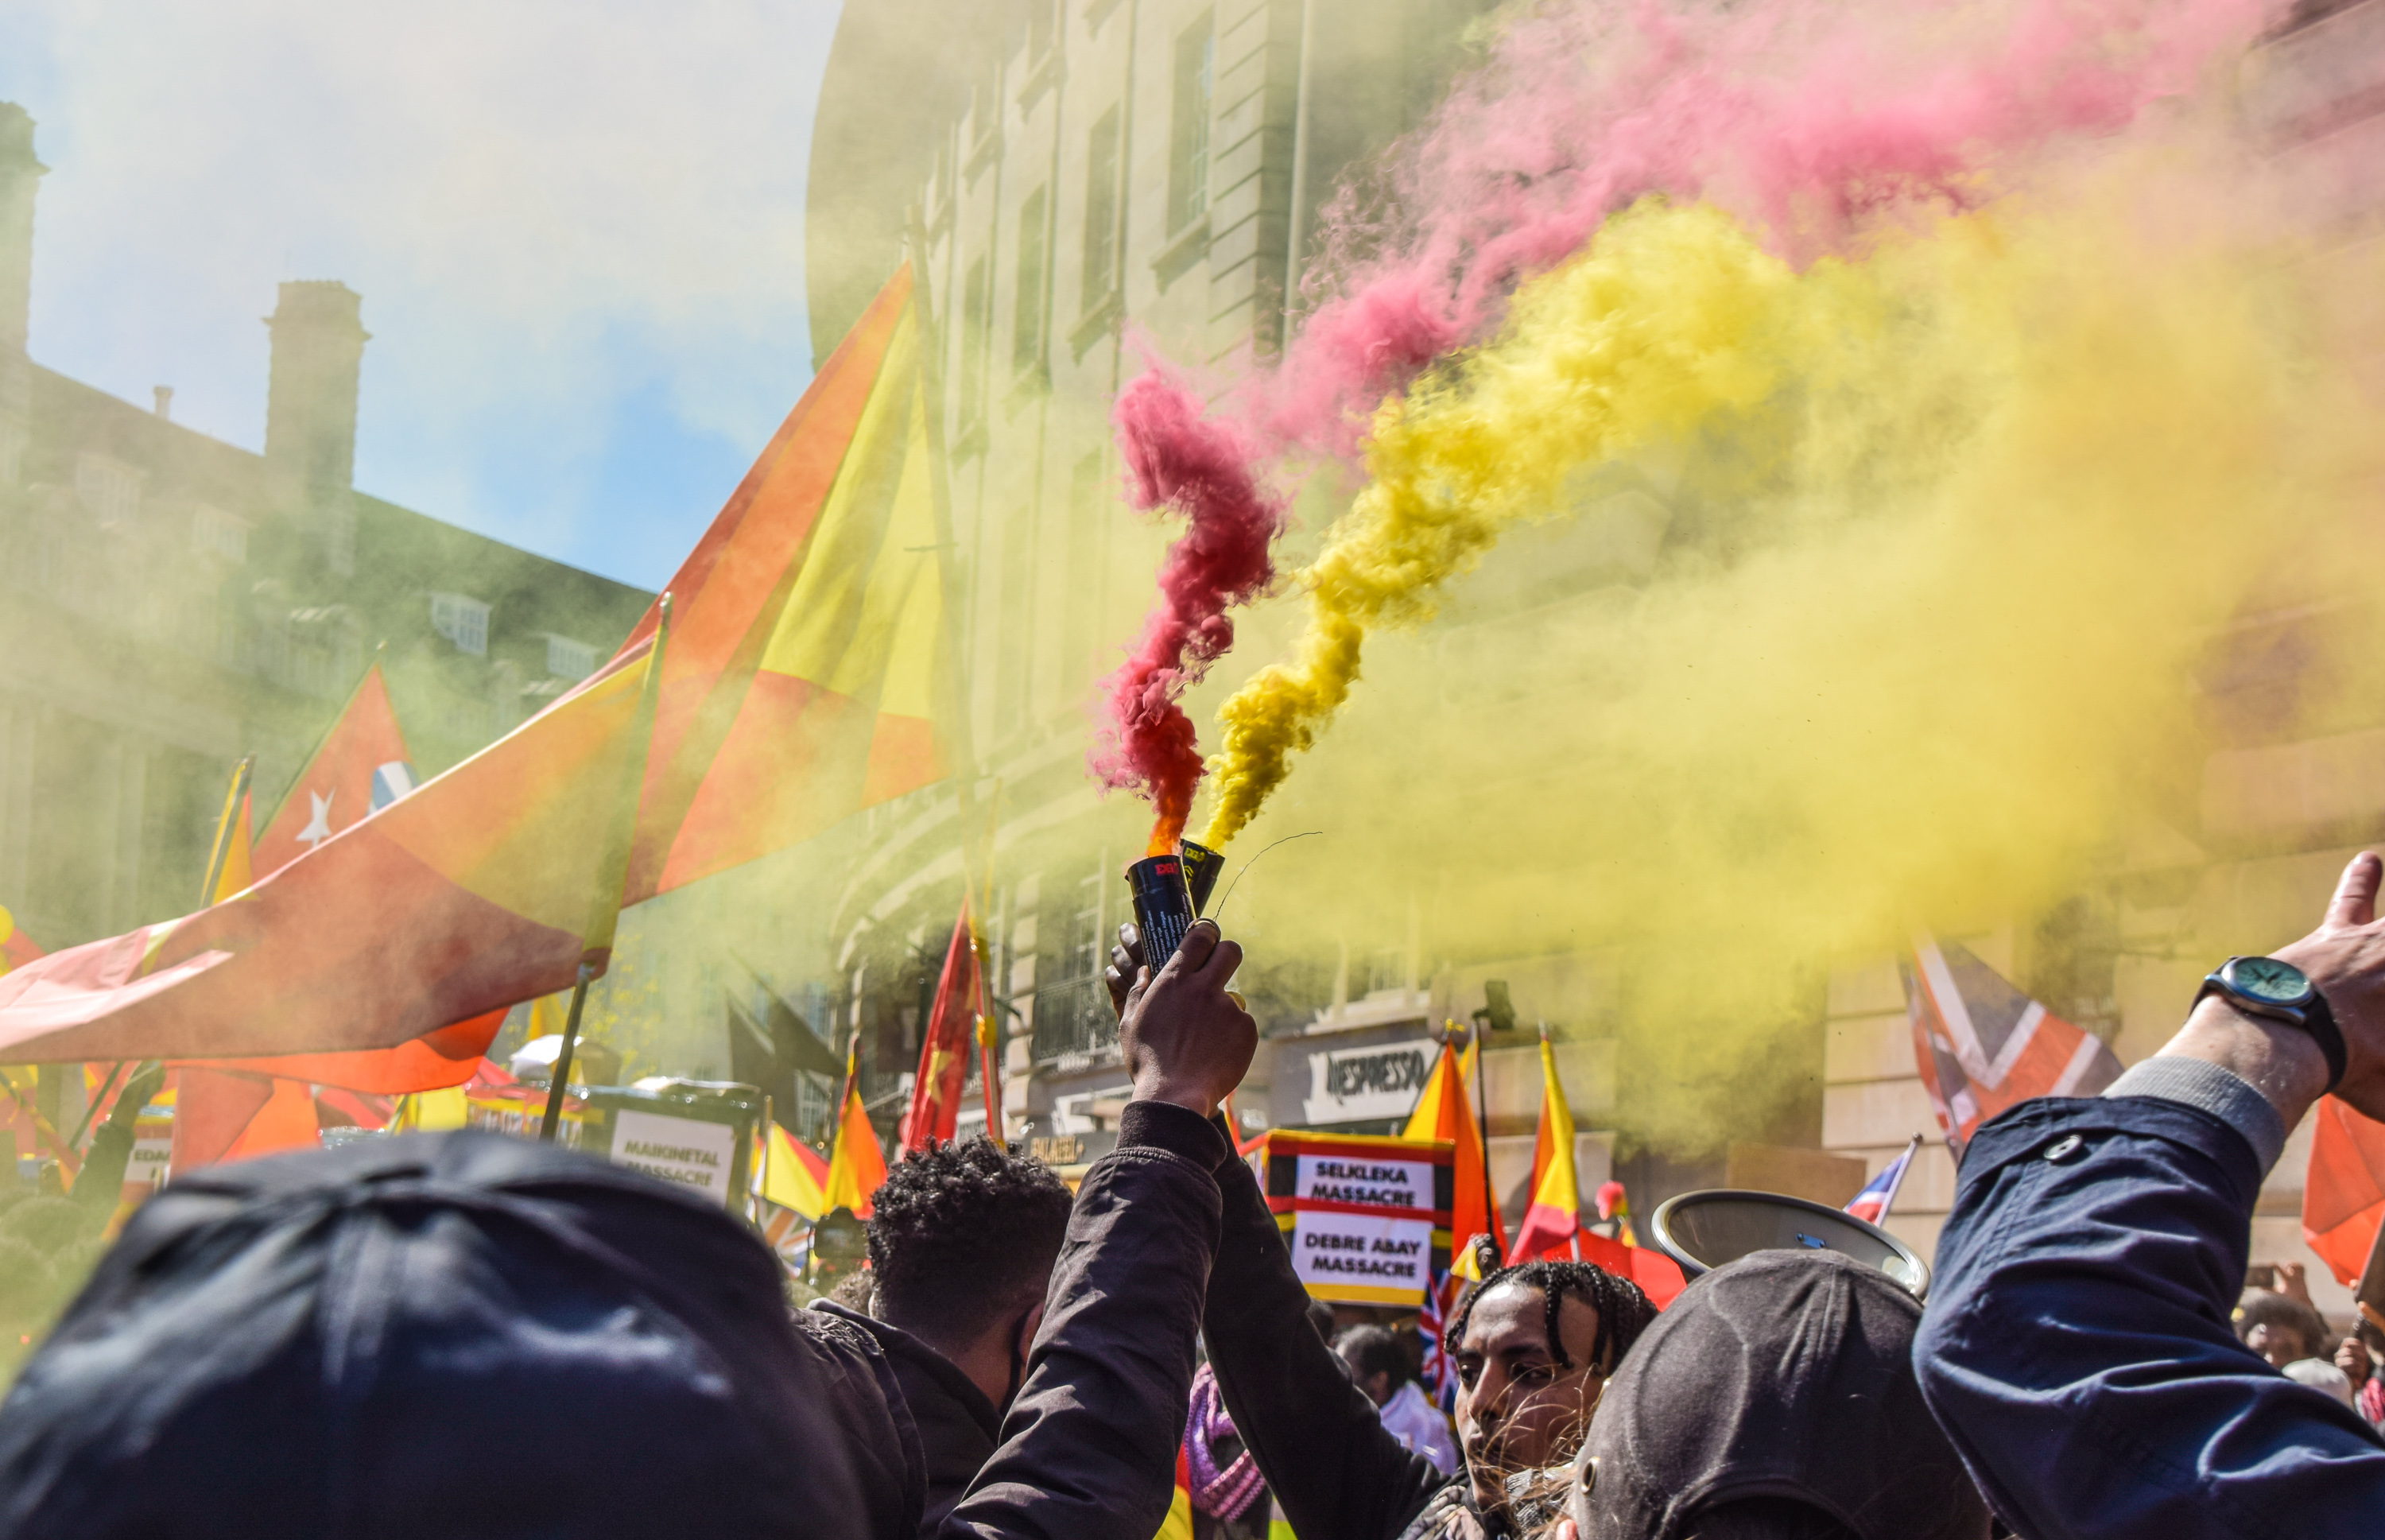 """<p>LONDON, UNITED KINGDOM - 2021/04/25: Protesters hold smoke flares during the demonstration. Thousands of people marched through Central London in protest of what the demonstrators call Ethiopia's and Eritrea's """"genocidal war"""" on the region of Tigray. (Photo by Vuk Valcic/SOPA Images/LightRocket via Getty Images)</p>"""